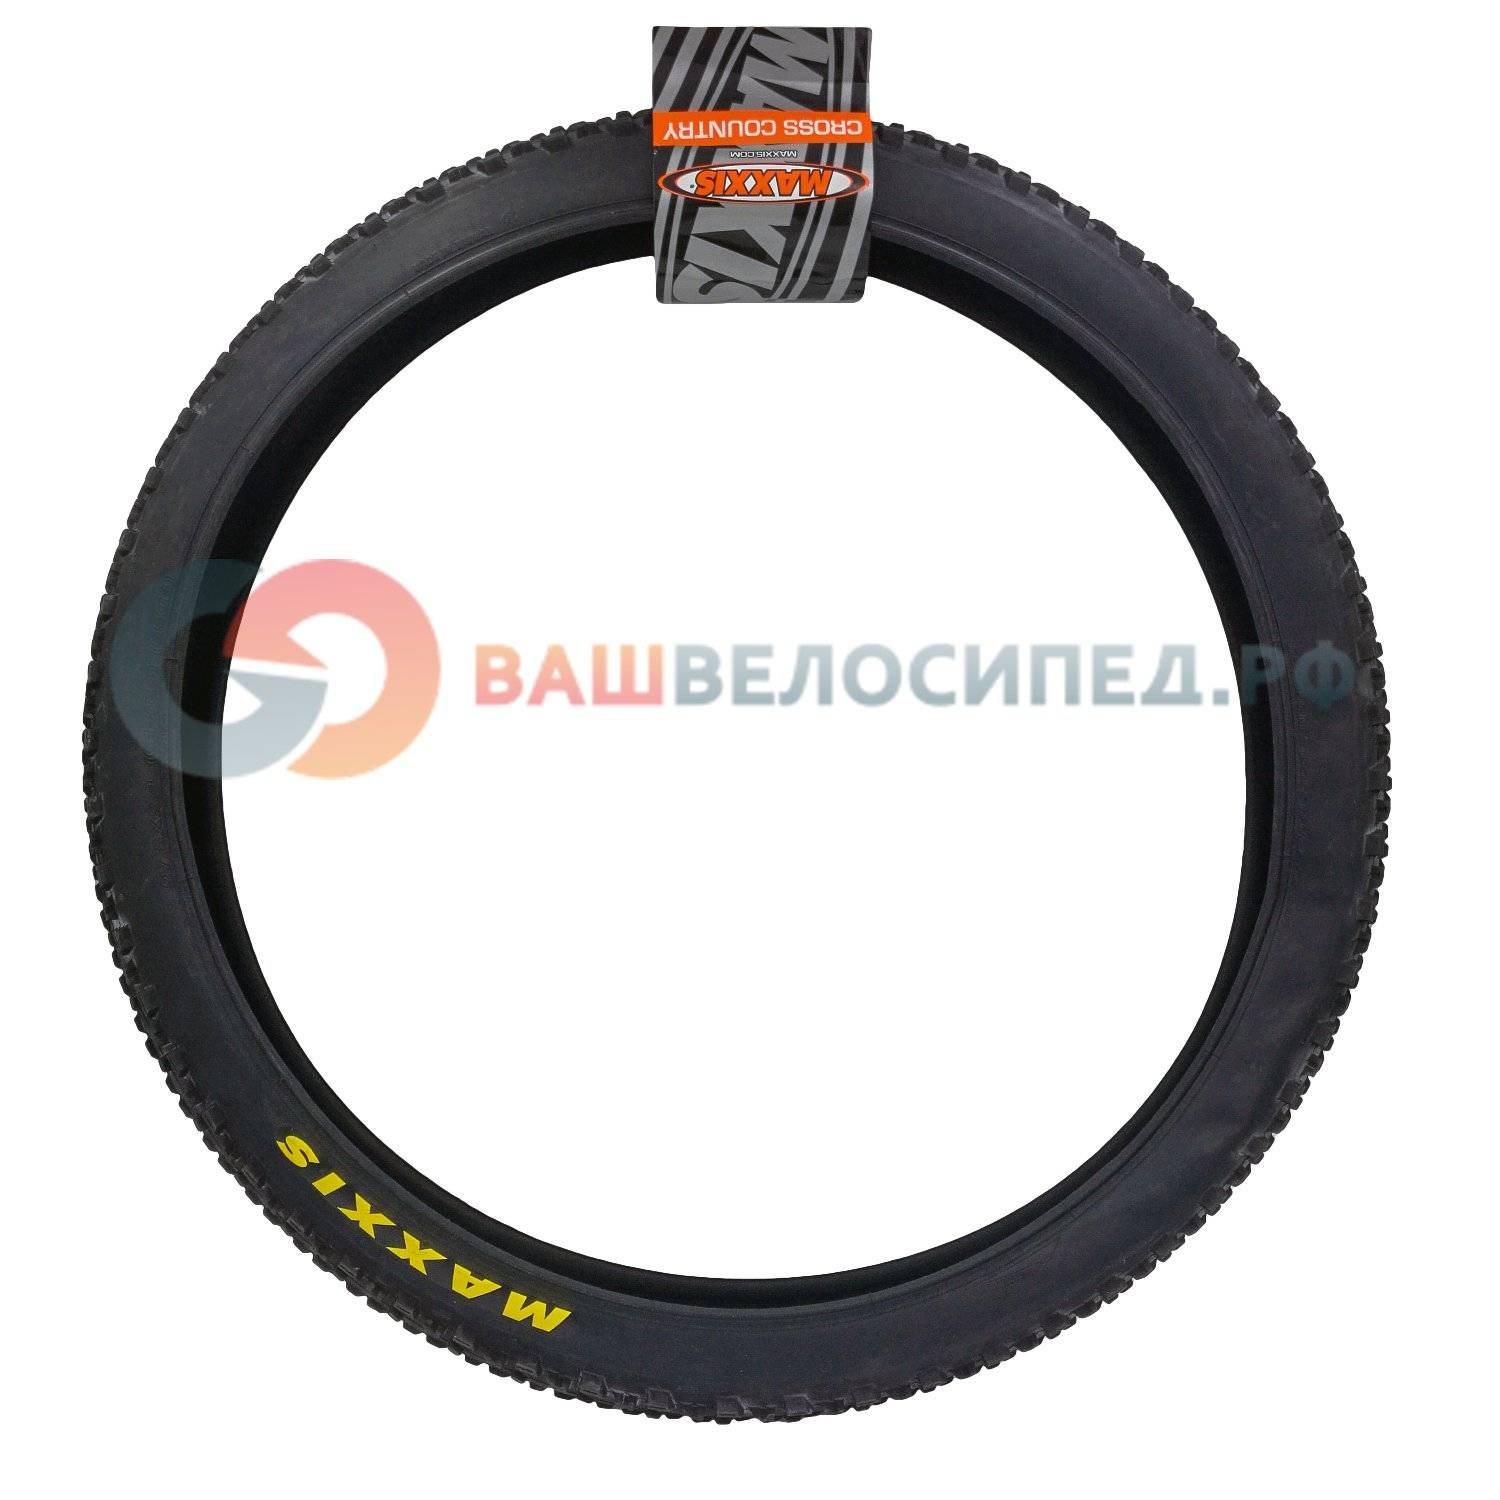 Покрышка Maxxis Ardent EXO, 27.5x2.4, 60 TPI, МТБ, TB85965000, фото 3